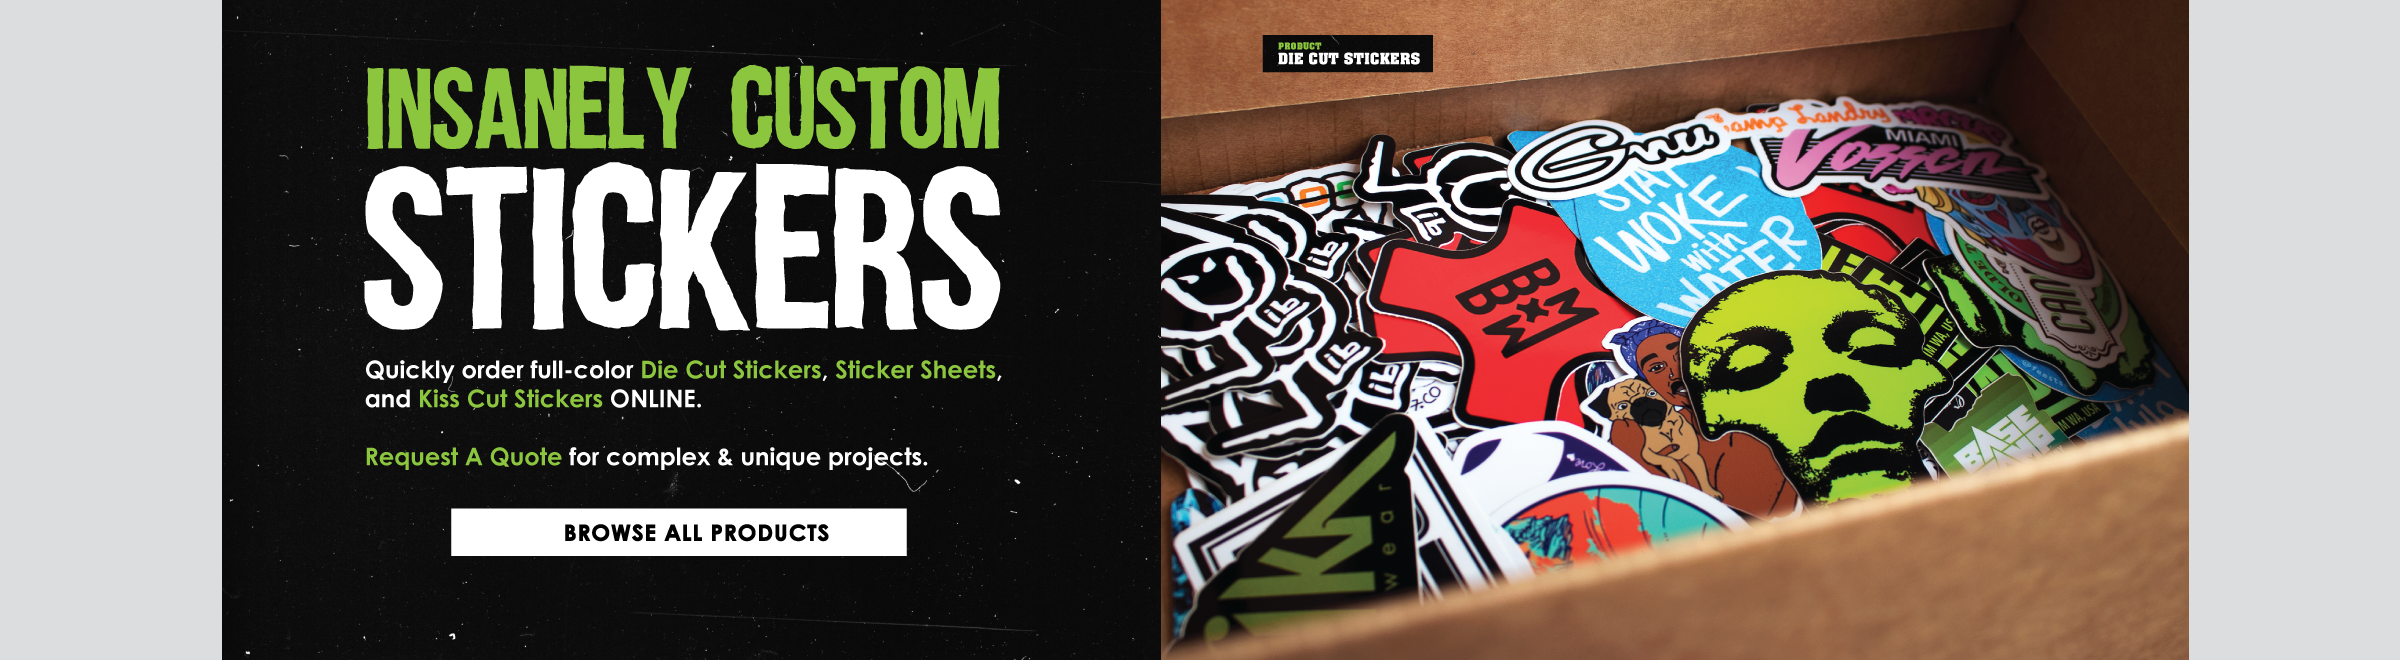 Home · shop · insanely custom · templates · blog · faqs die cut stickers